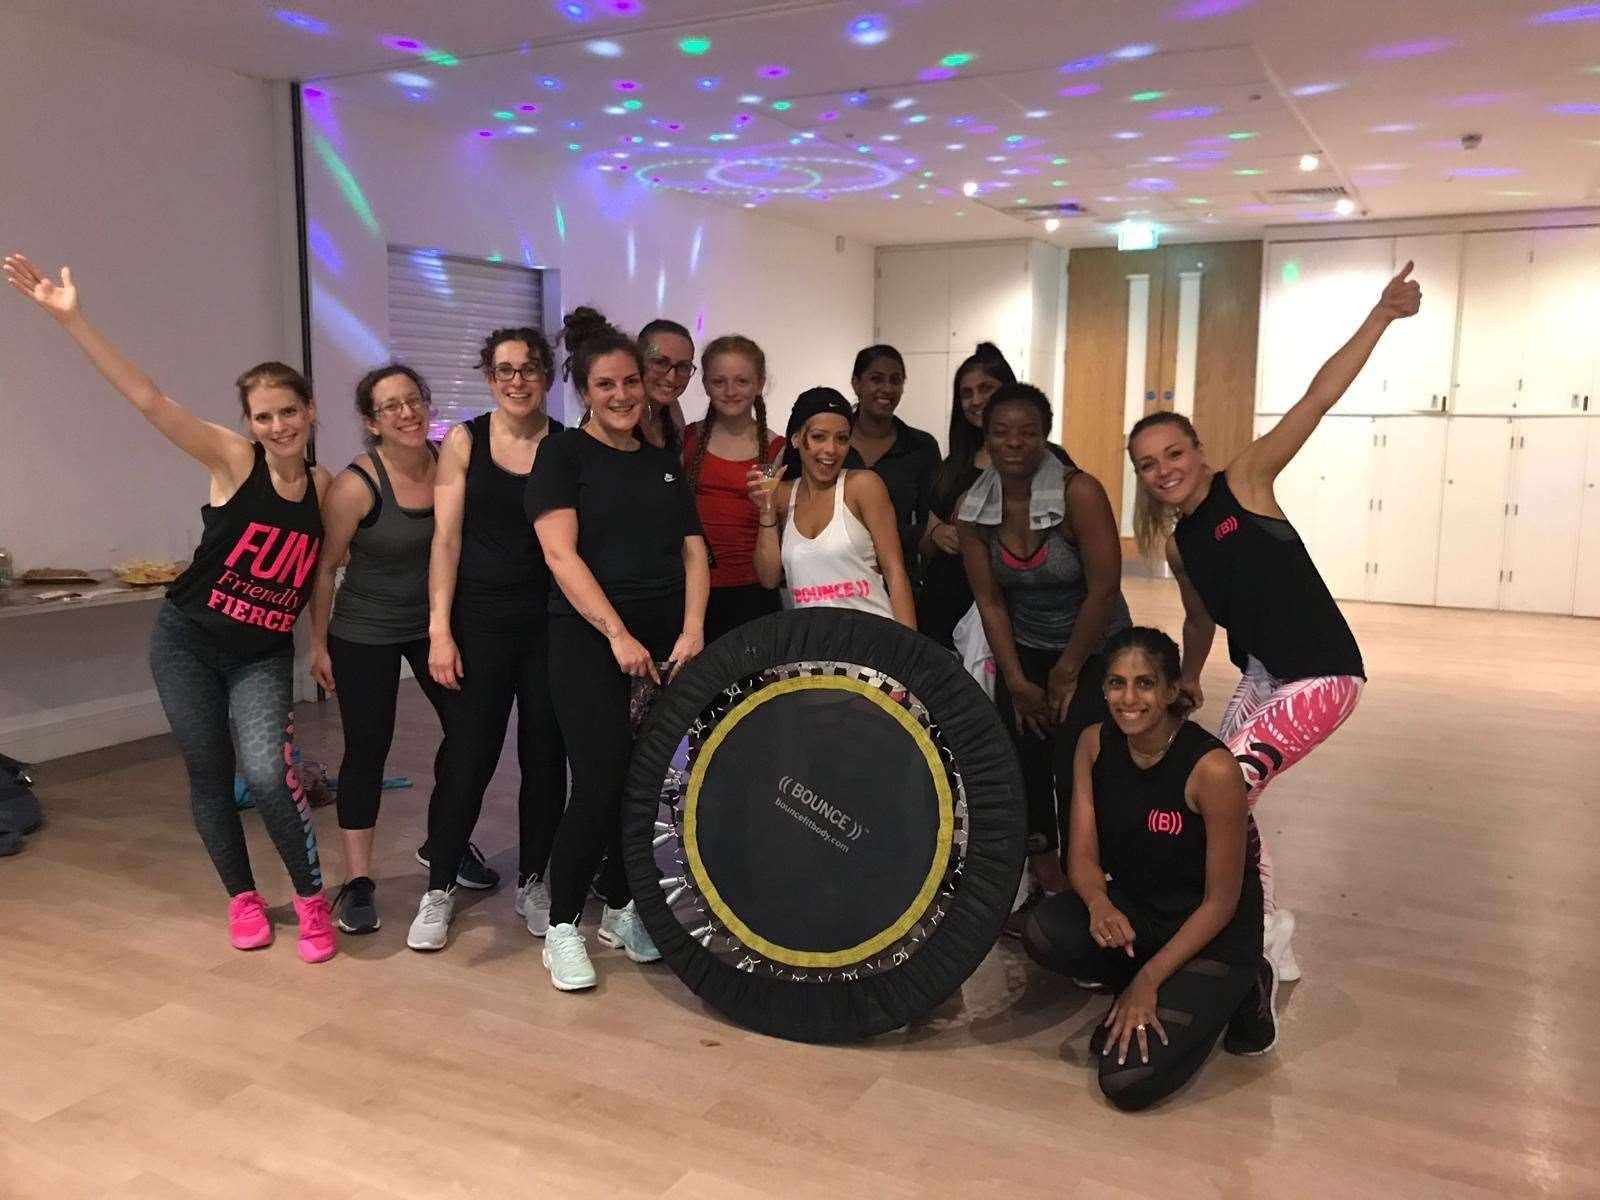 Intructor Nikol is pictured on the left at one of her London classes (15160042)